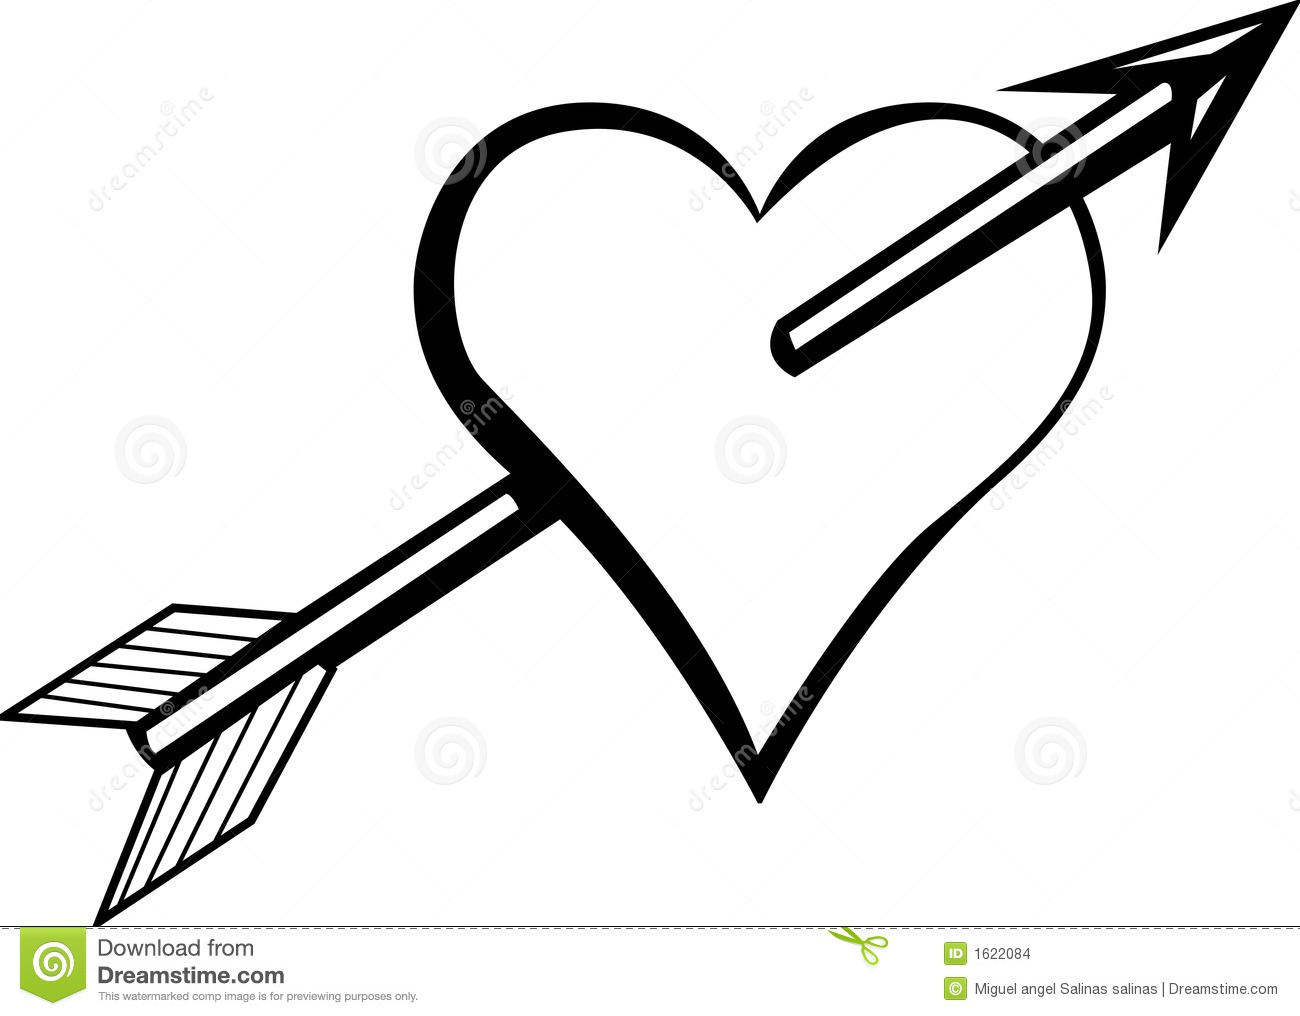 Arrow with heart clipart. Rustic arrows and kid